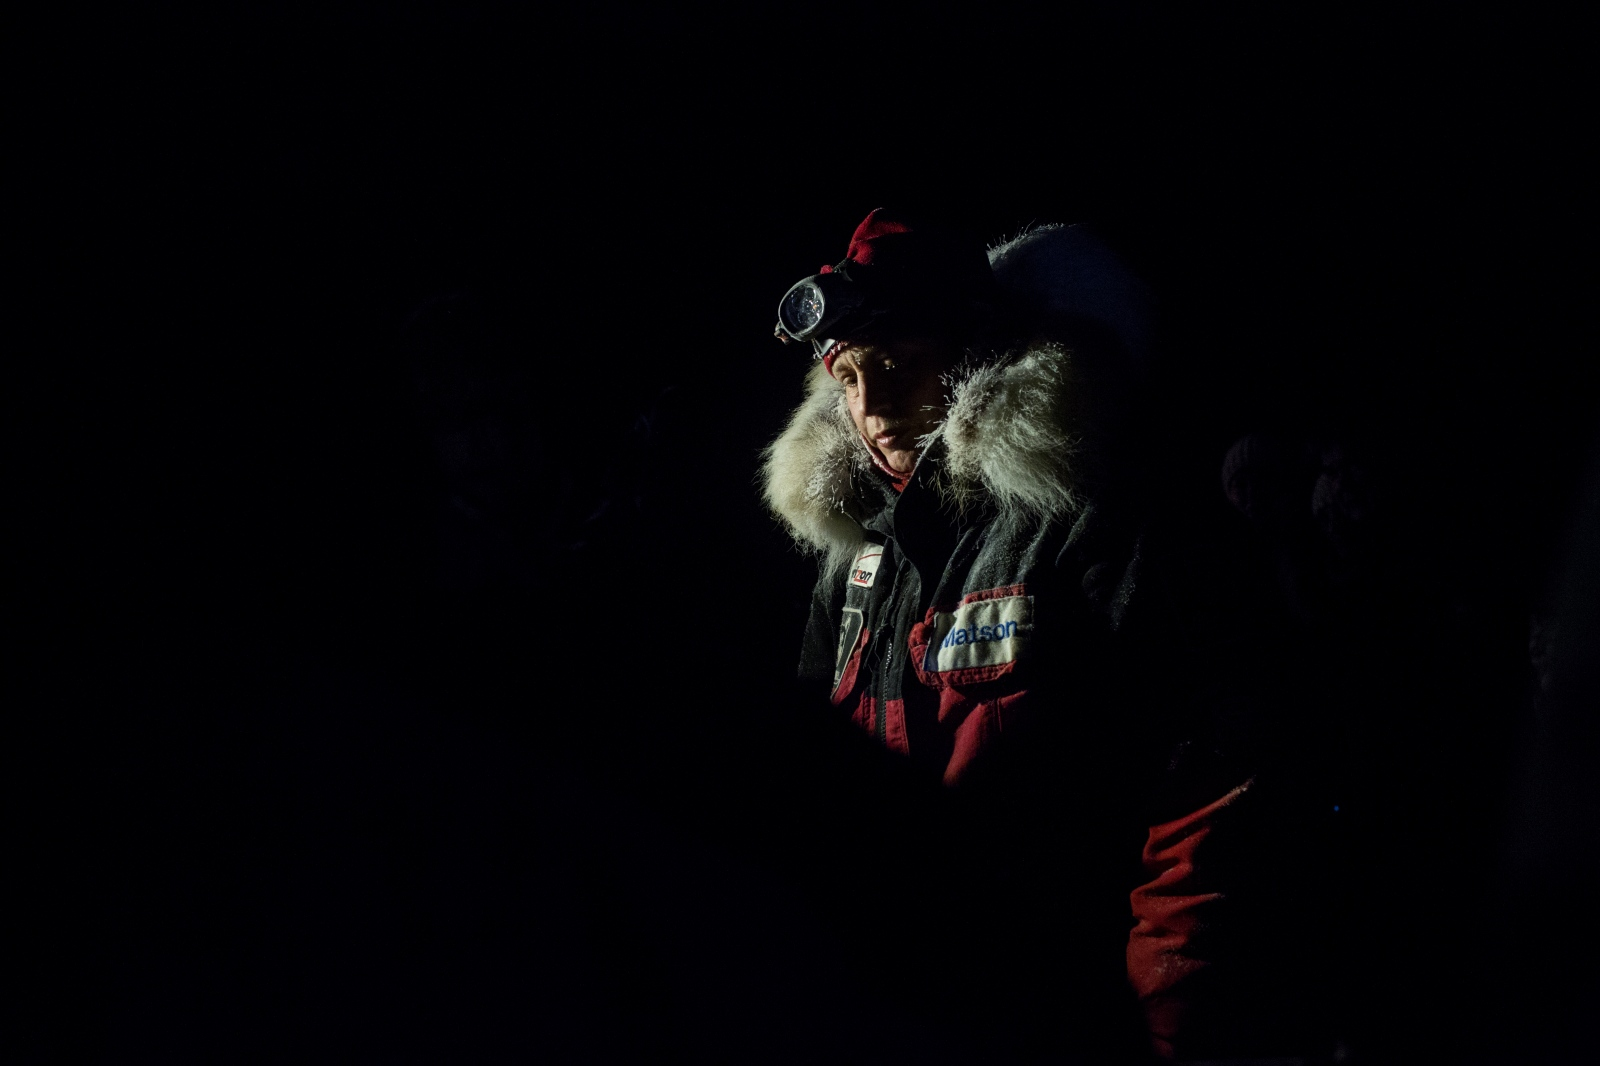 Aliy Zirkle, after arriving third in Unalakleet in the early morning hours of March 13, 2016.